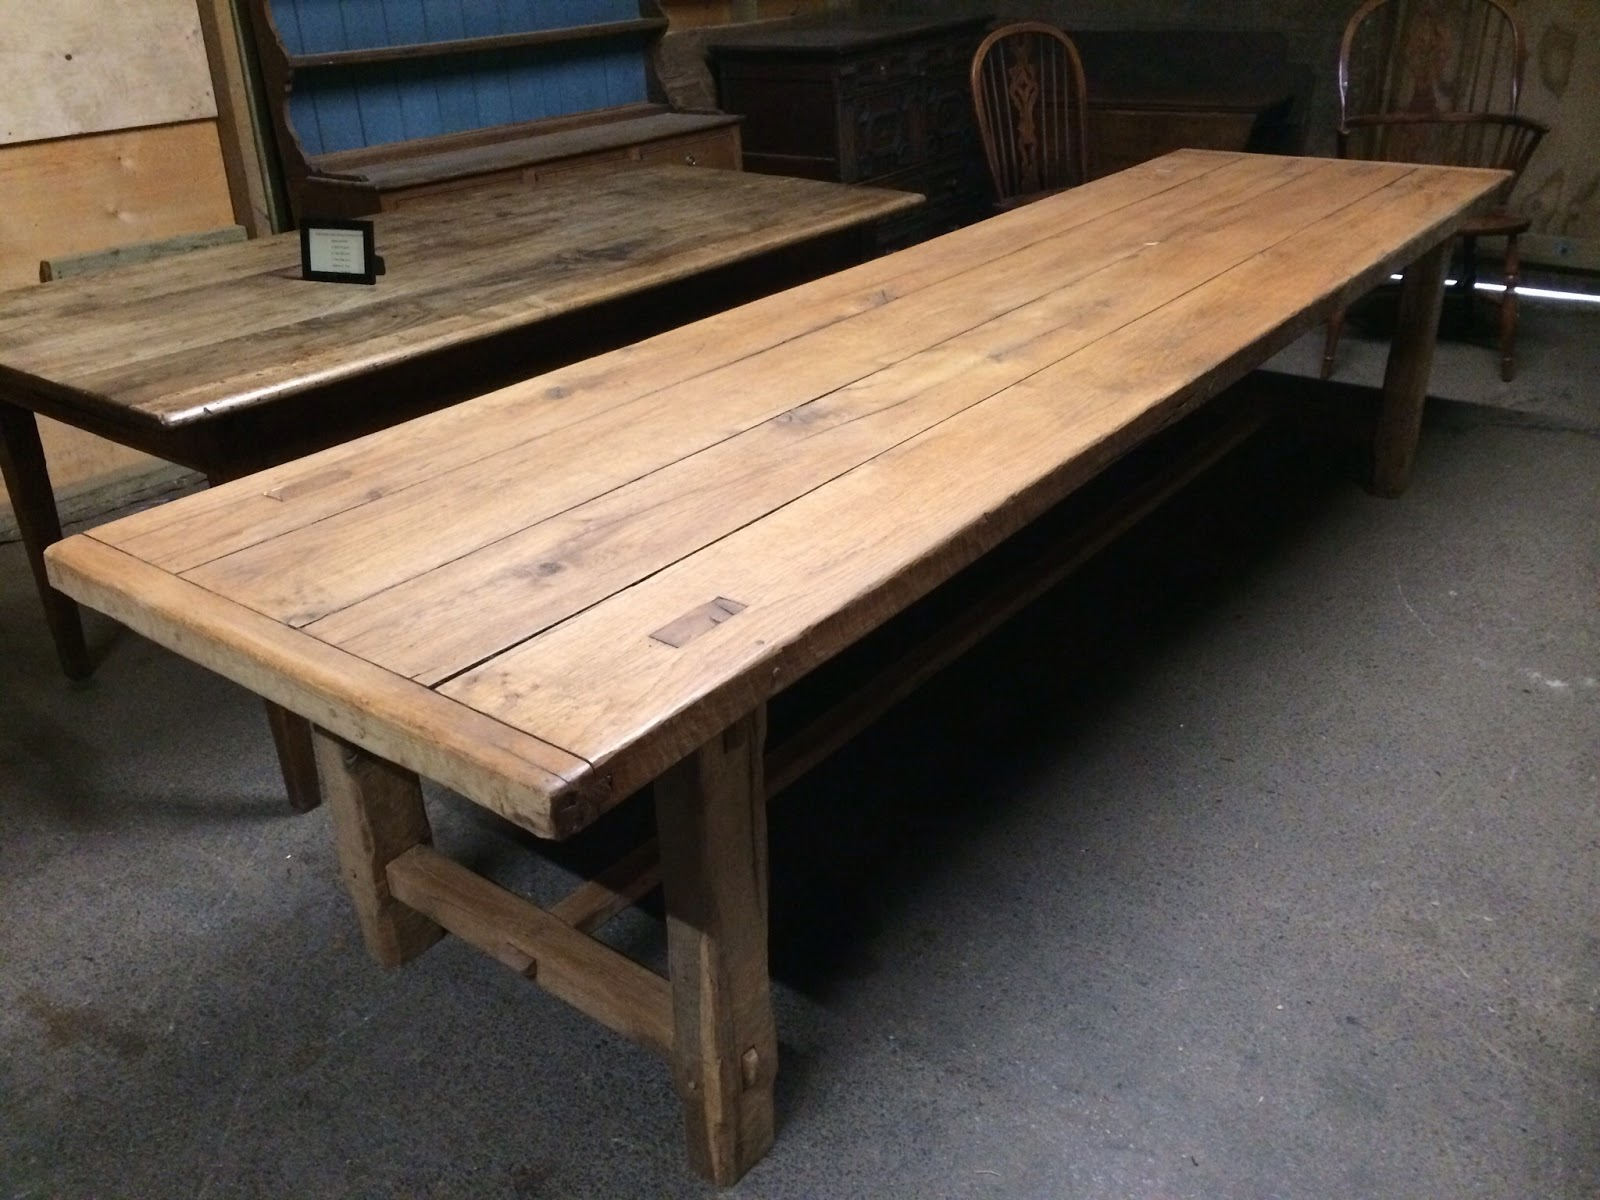 Check out These Oak Farmhouse Dining Table for your house : bargain john39s antiques a blog archive mission oak library table and oak farmhouse dining table from www.artsdomicile.com size 1600 x 1200 jpeg 254kB